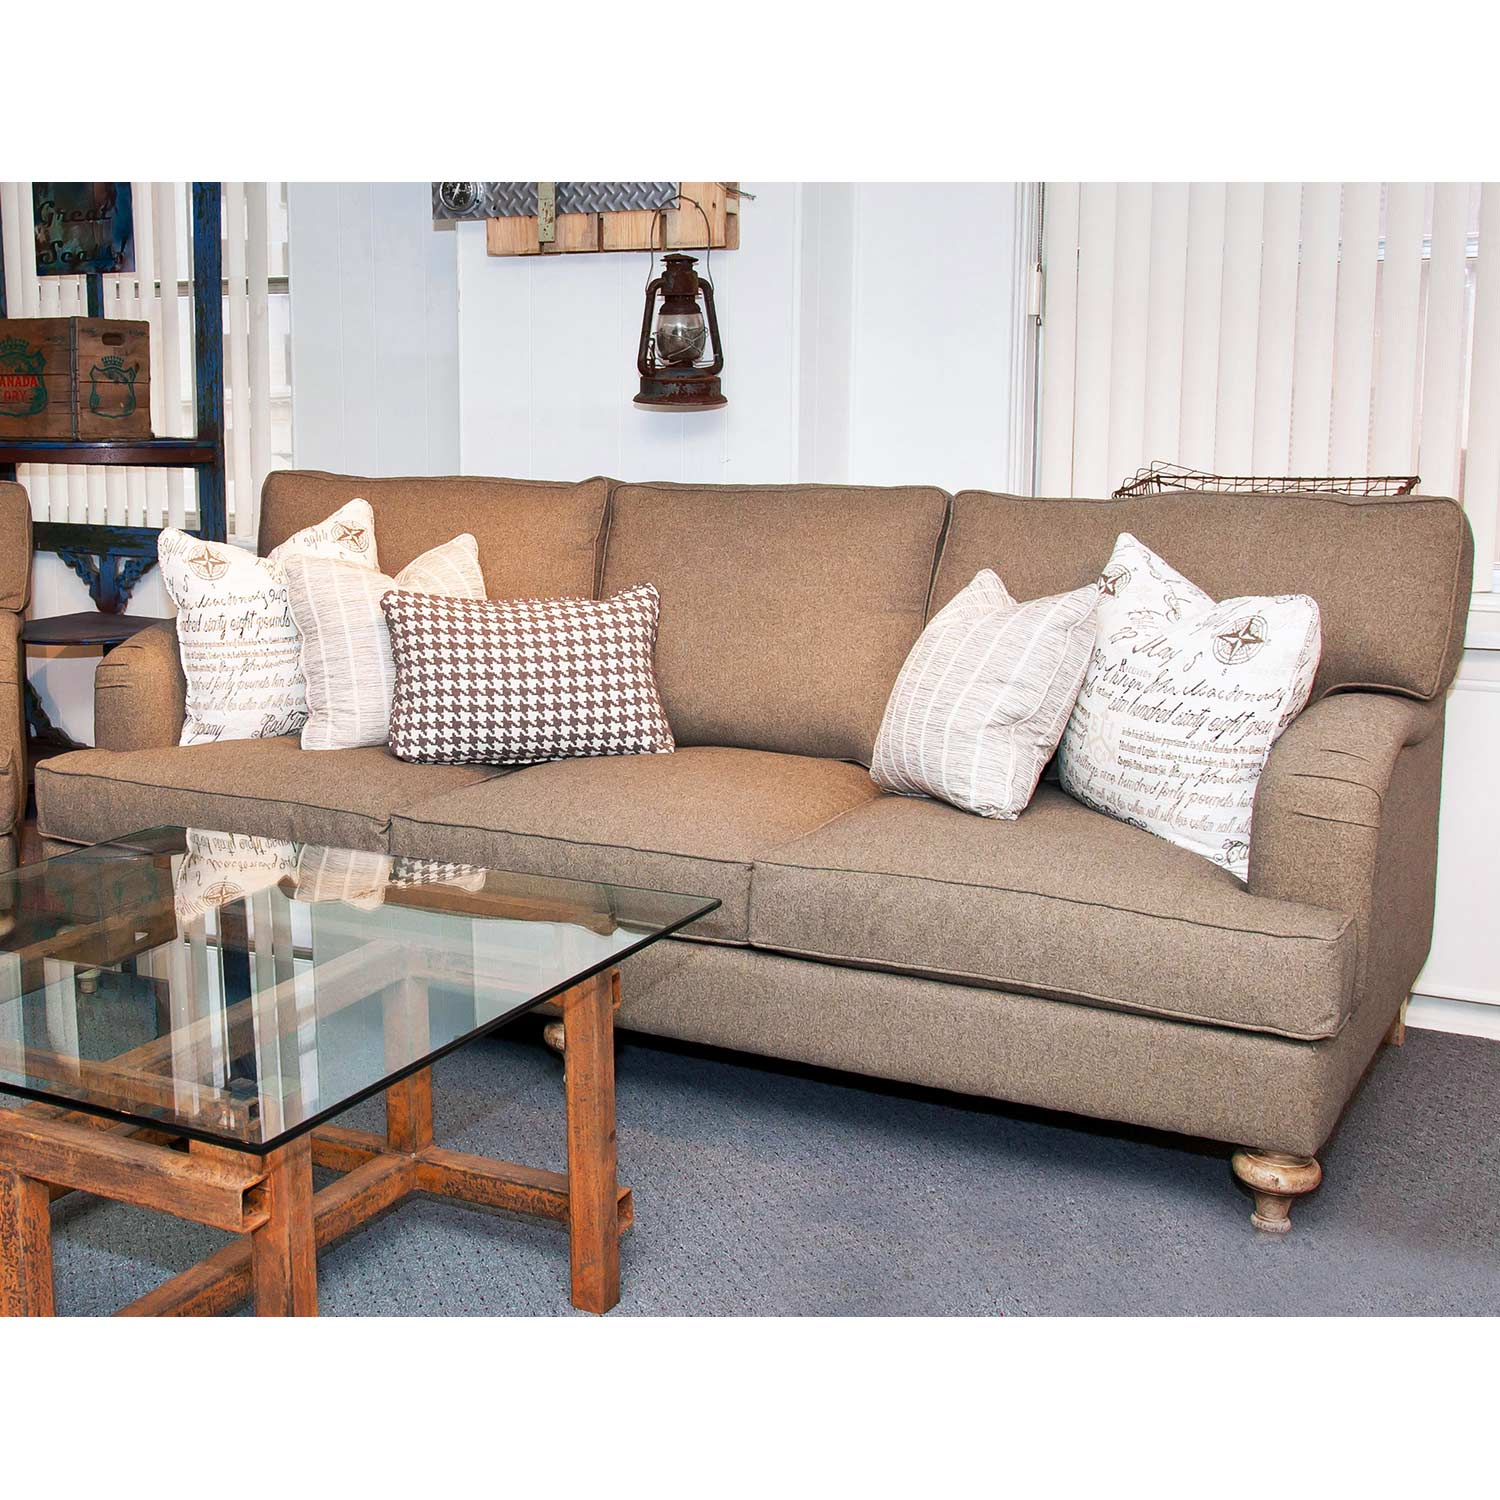 Ryder Transitional Sofa - Turned Feet, Highlands Mohair Fabric - CHF-50125-S